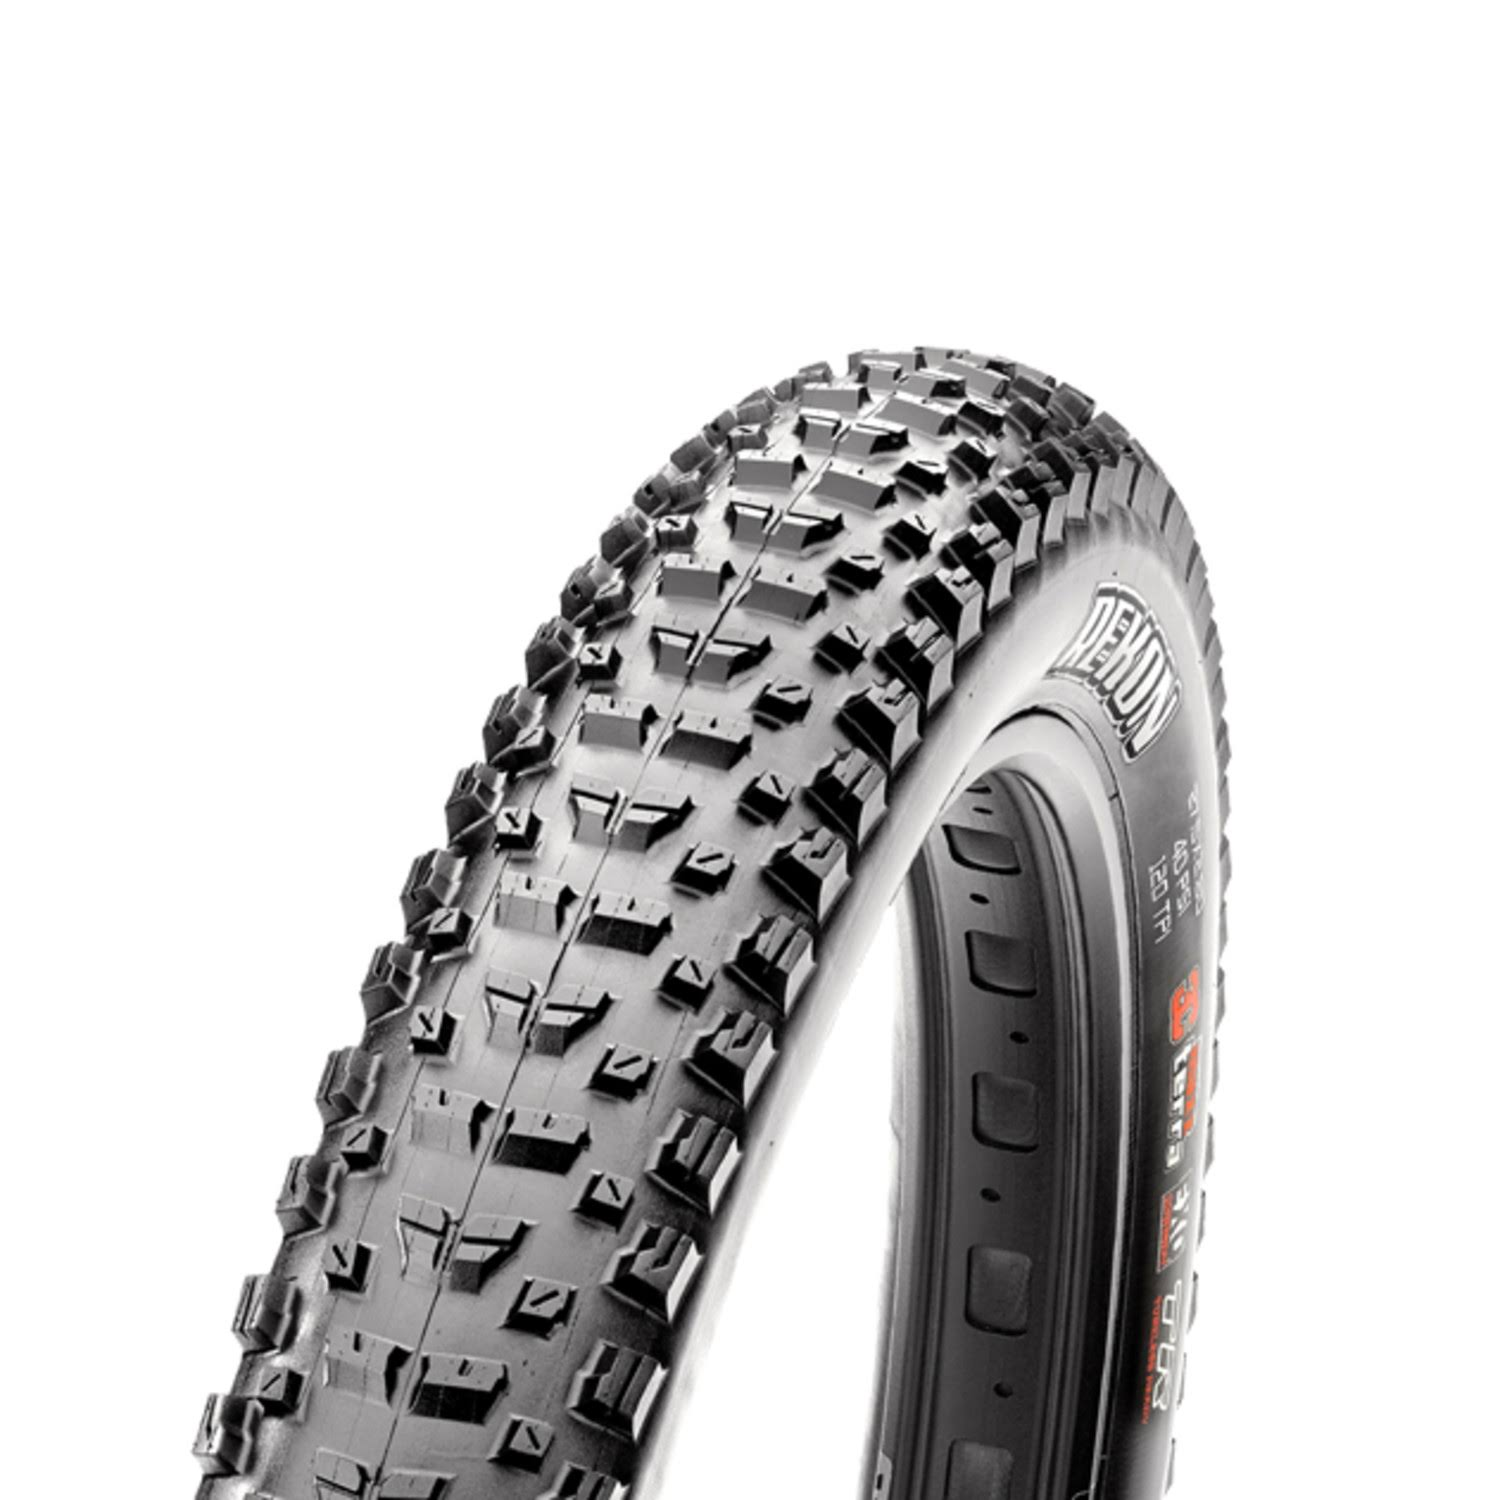 Maxxis Rekon Folding,120tpi 3C MaxxTerra Compound Tire - 27.5""